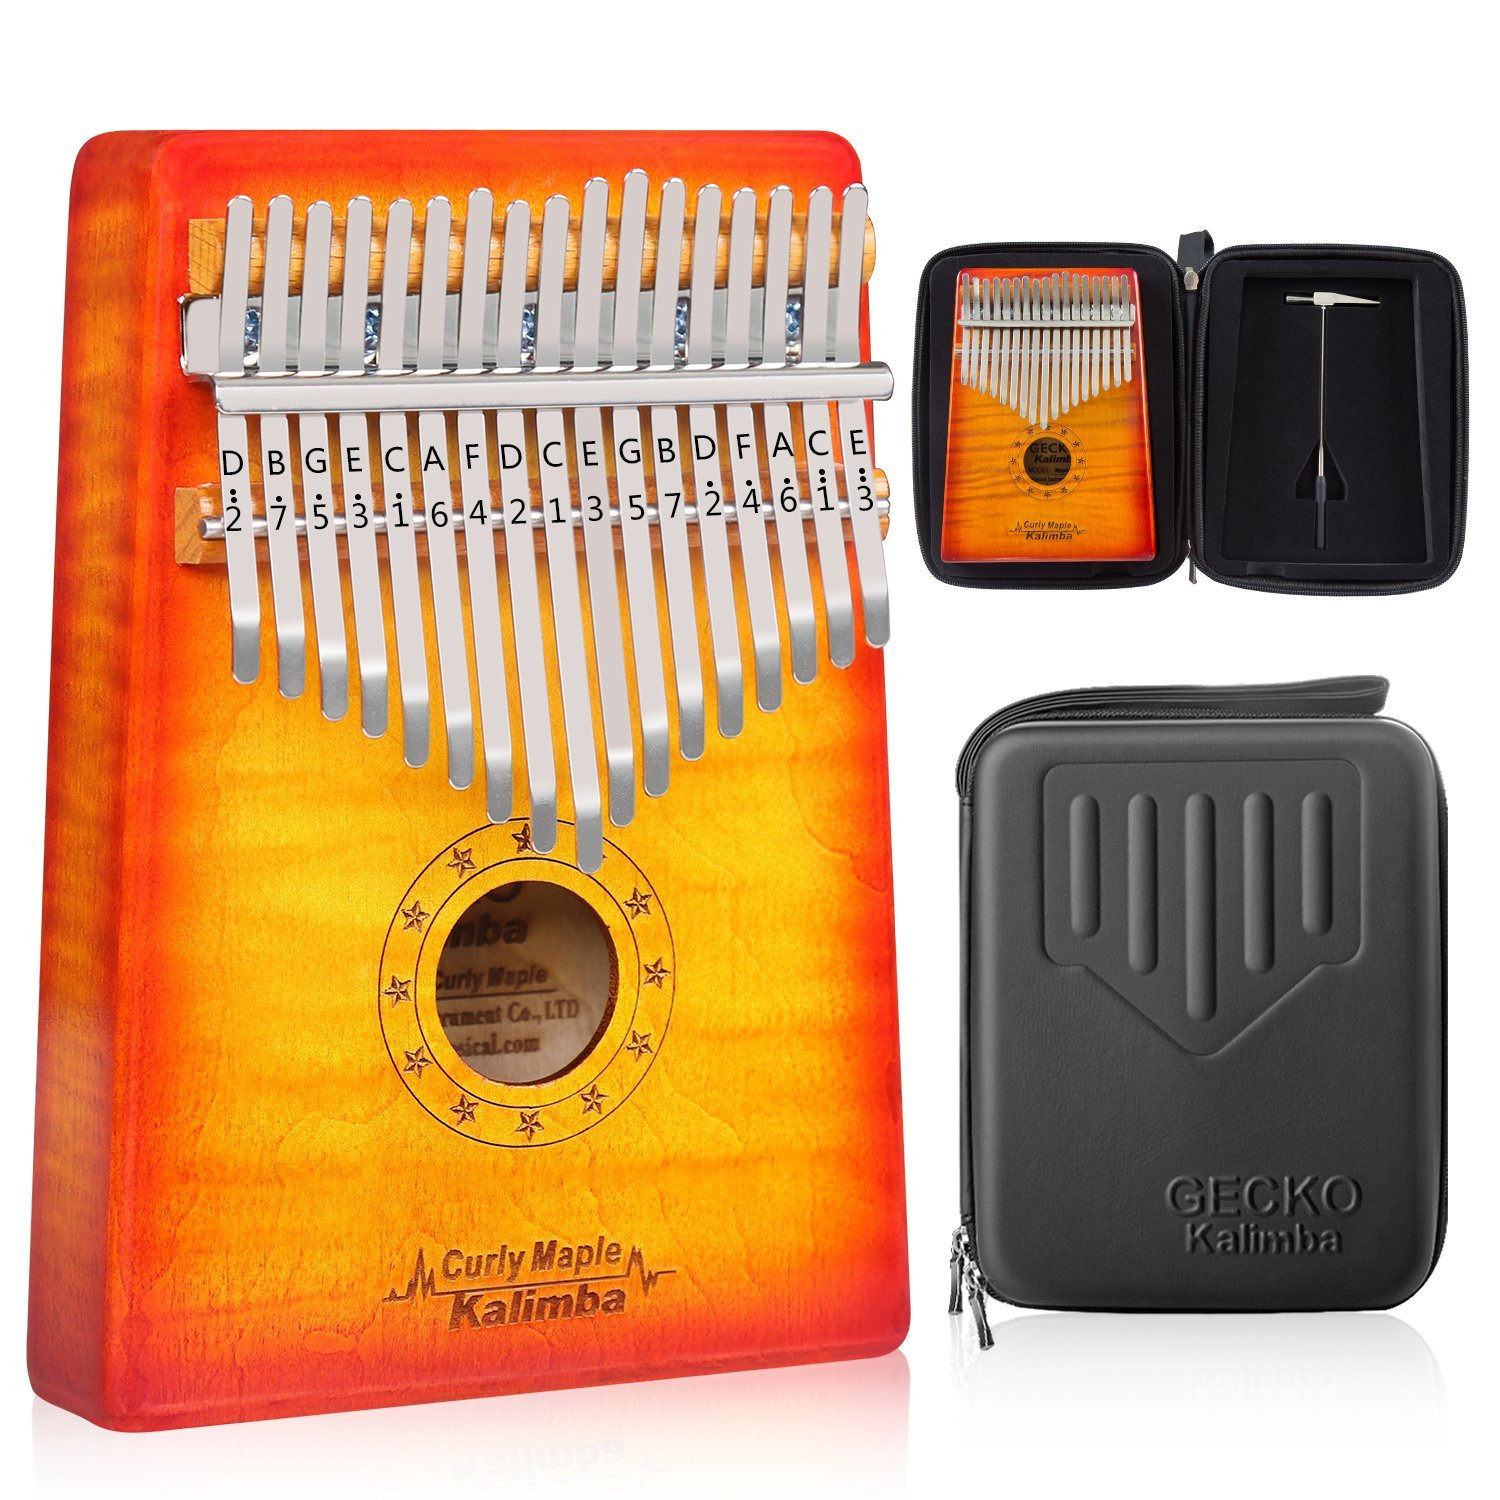 GECKO 17 Key Kalimba Thumb Piano Finger Piano Solid Curly Maple Body with Case C tune